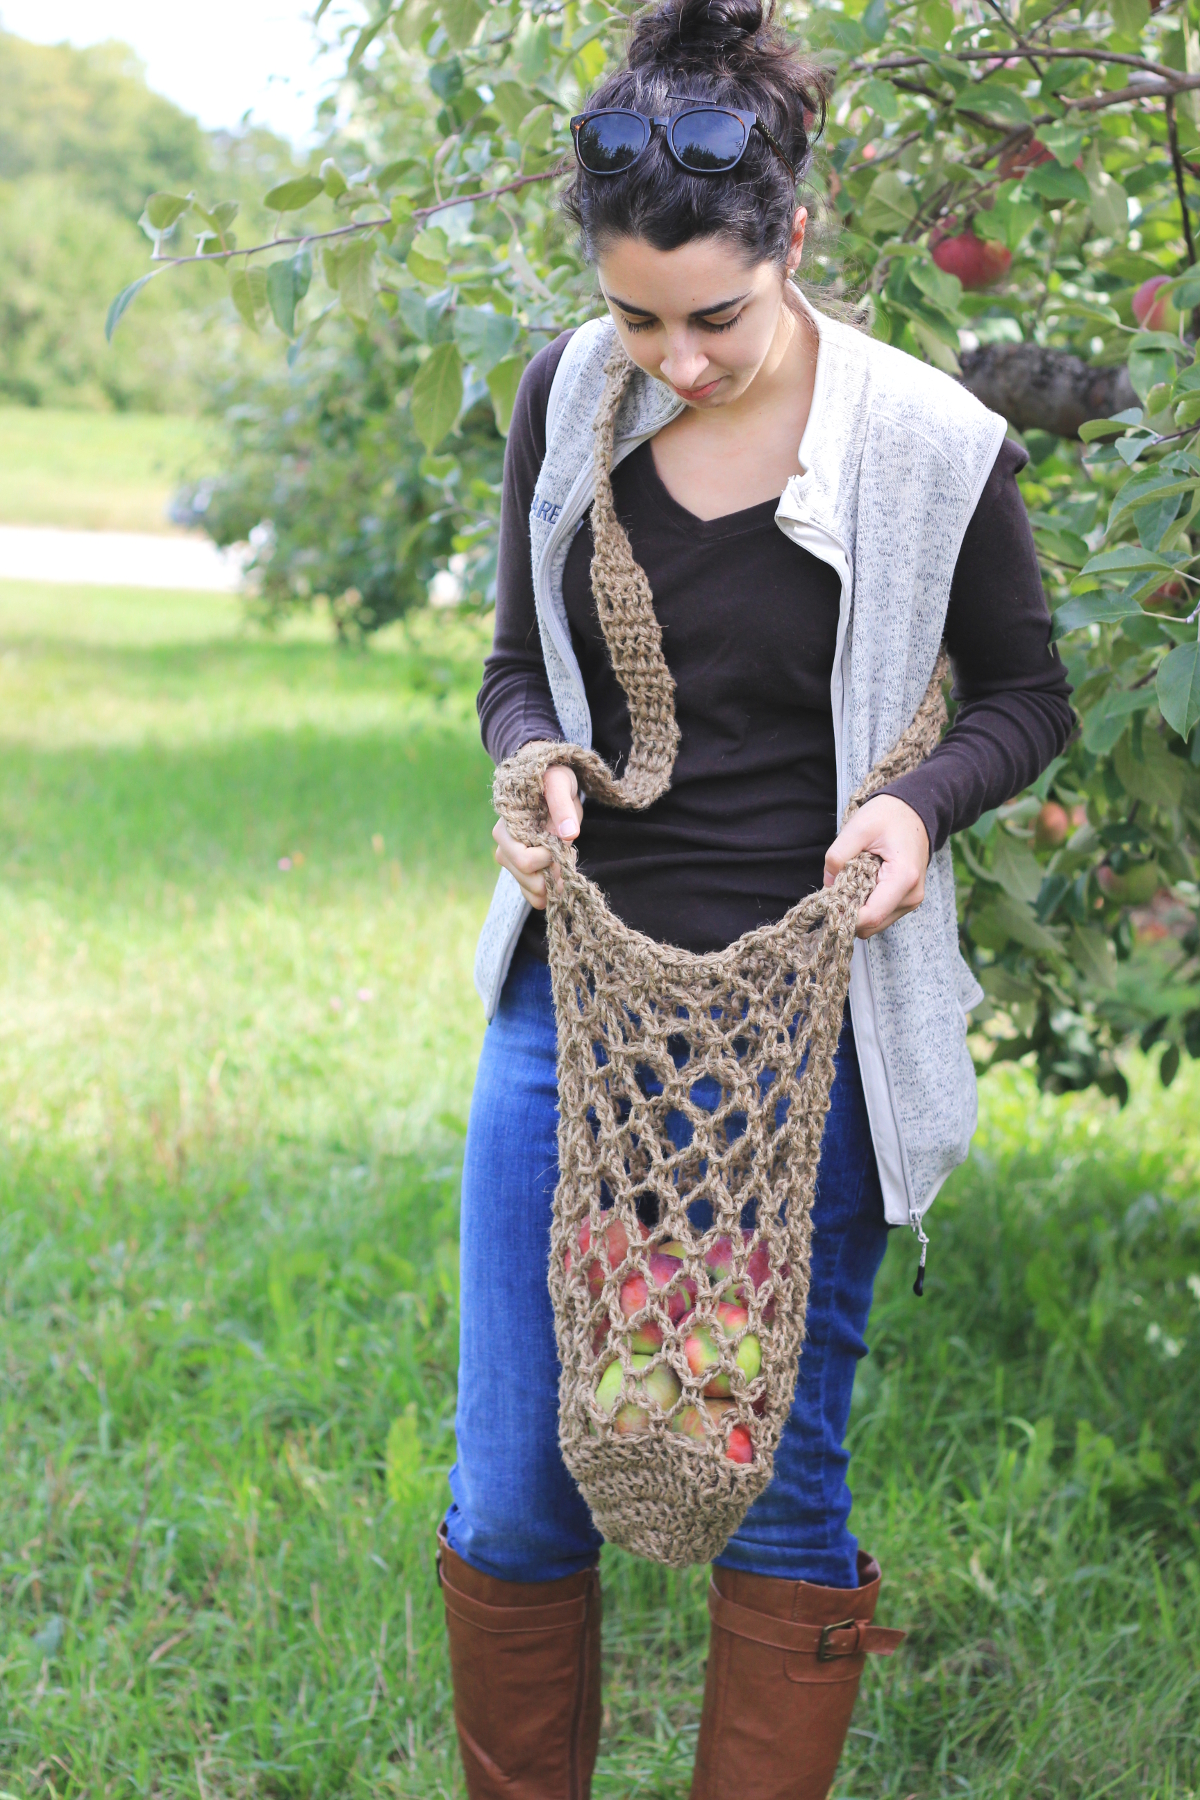 Twine Crochet Apple Bag